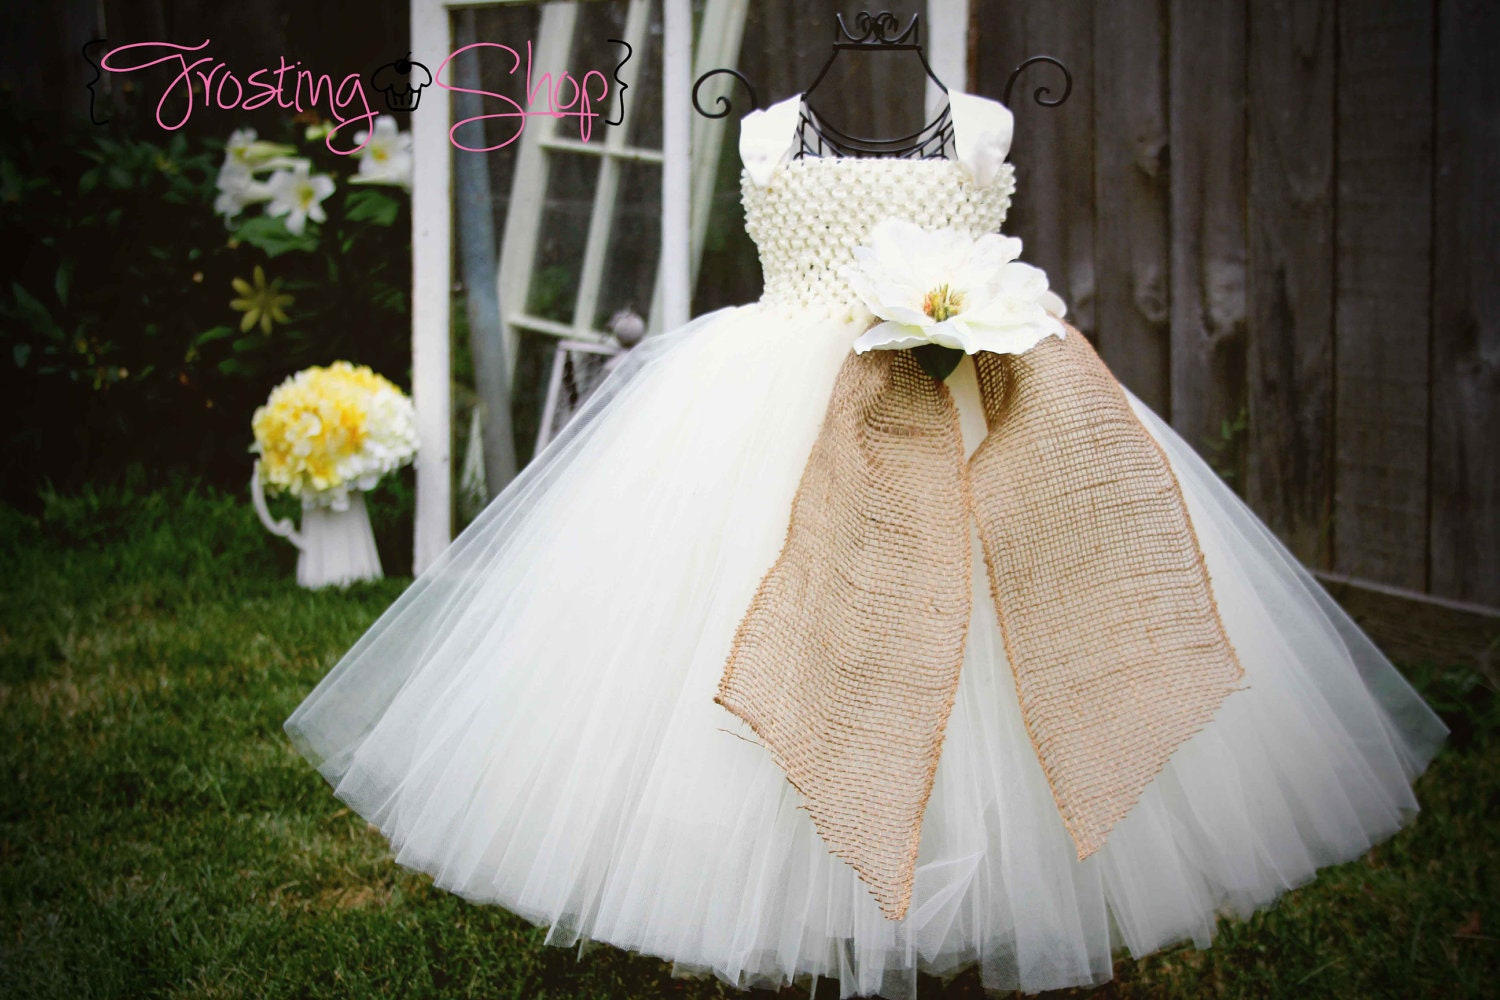 Burlap Tutu Dress Vintage Wedding Tulle color and flowers